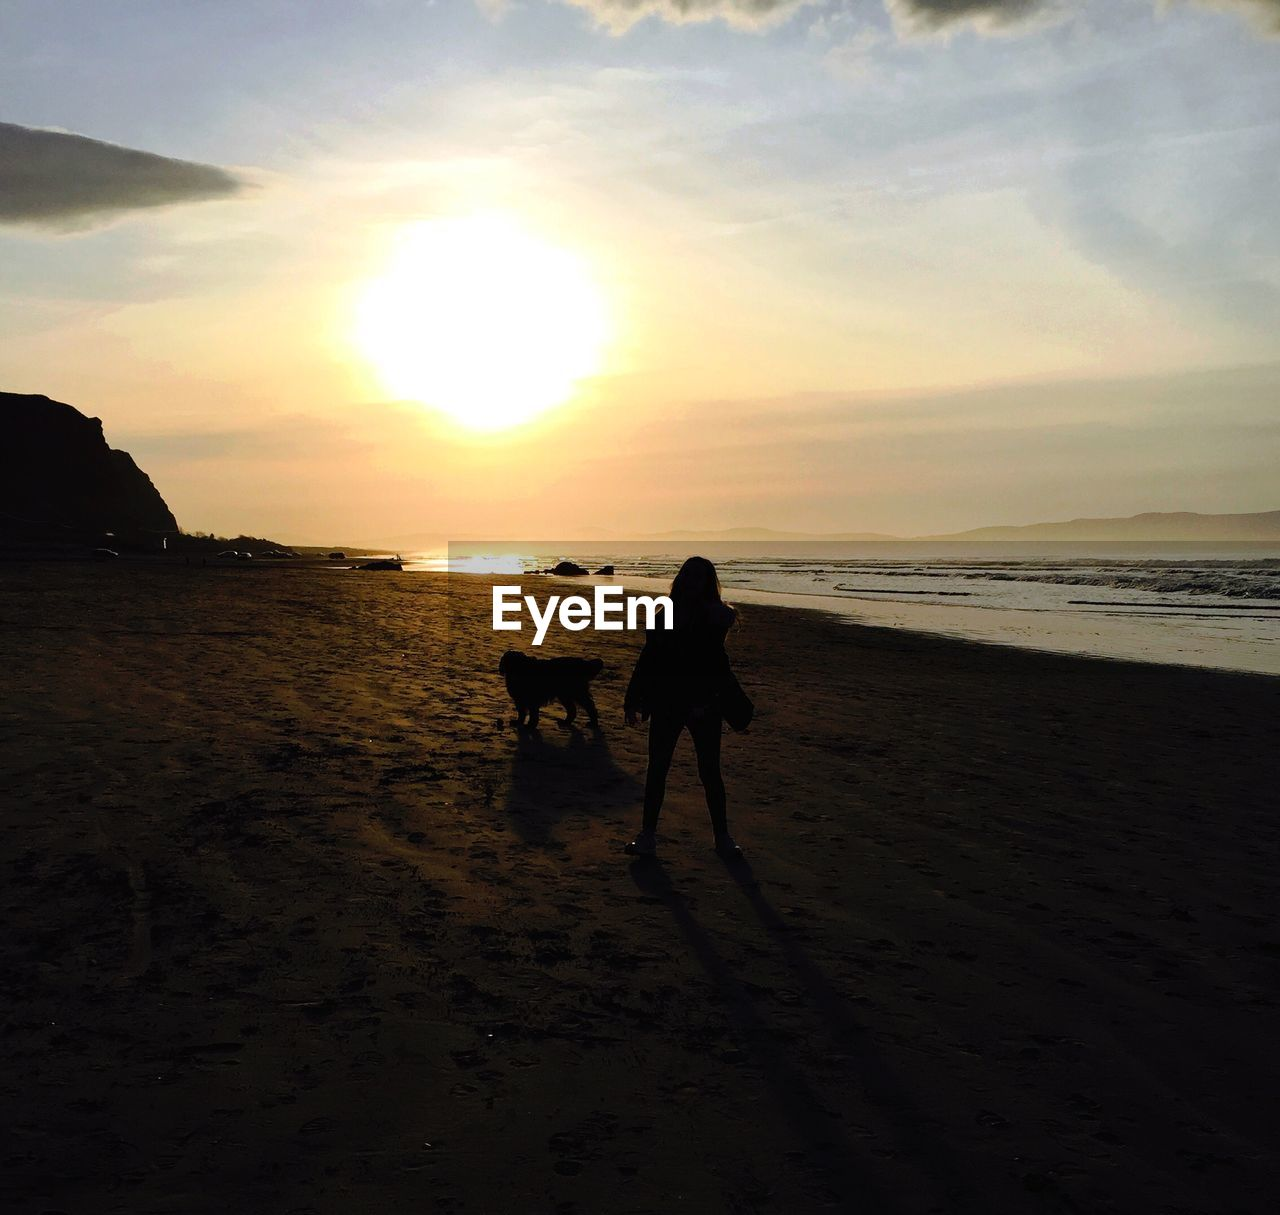 beach, sunset, sea, sand, nature, silhouette, dog, sky, scenics, walking, beauty in nature, water, horizon over water, pets, tranquil scene, domestic animals, togetherness, two people, tranquility, mammal, full length, real people, men, outdoors, friendship, day, people